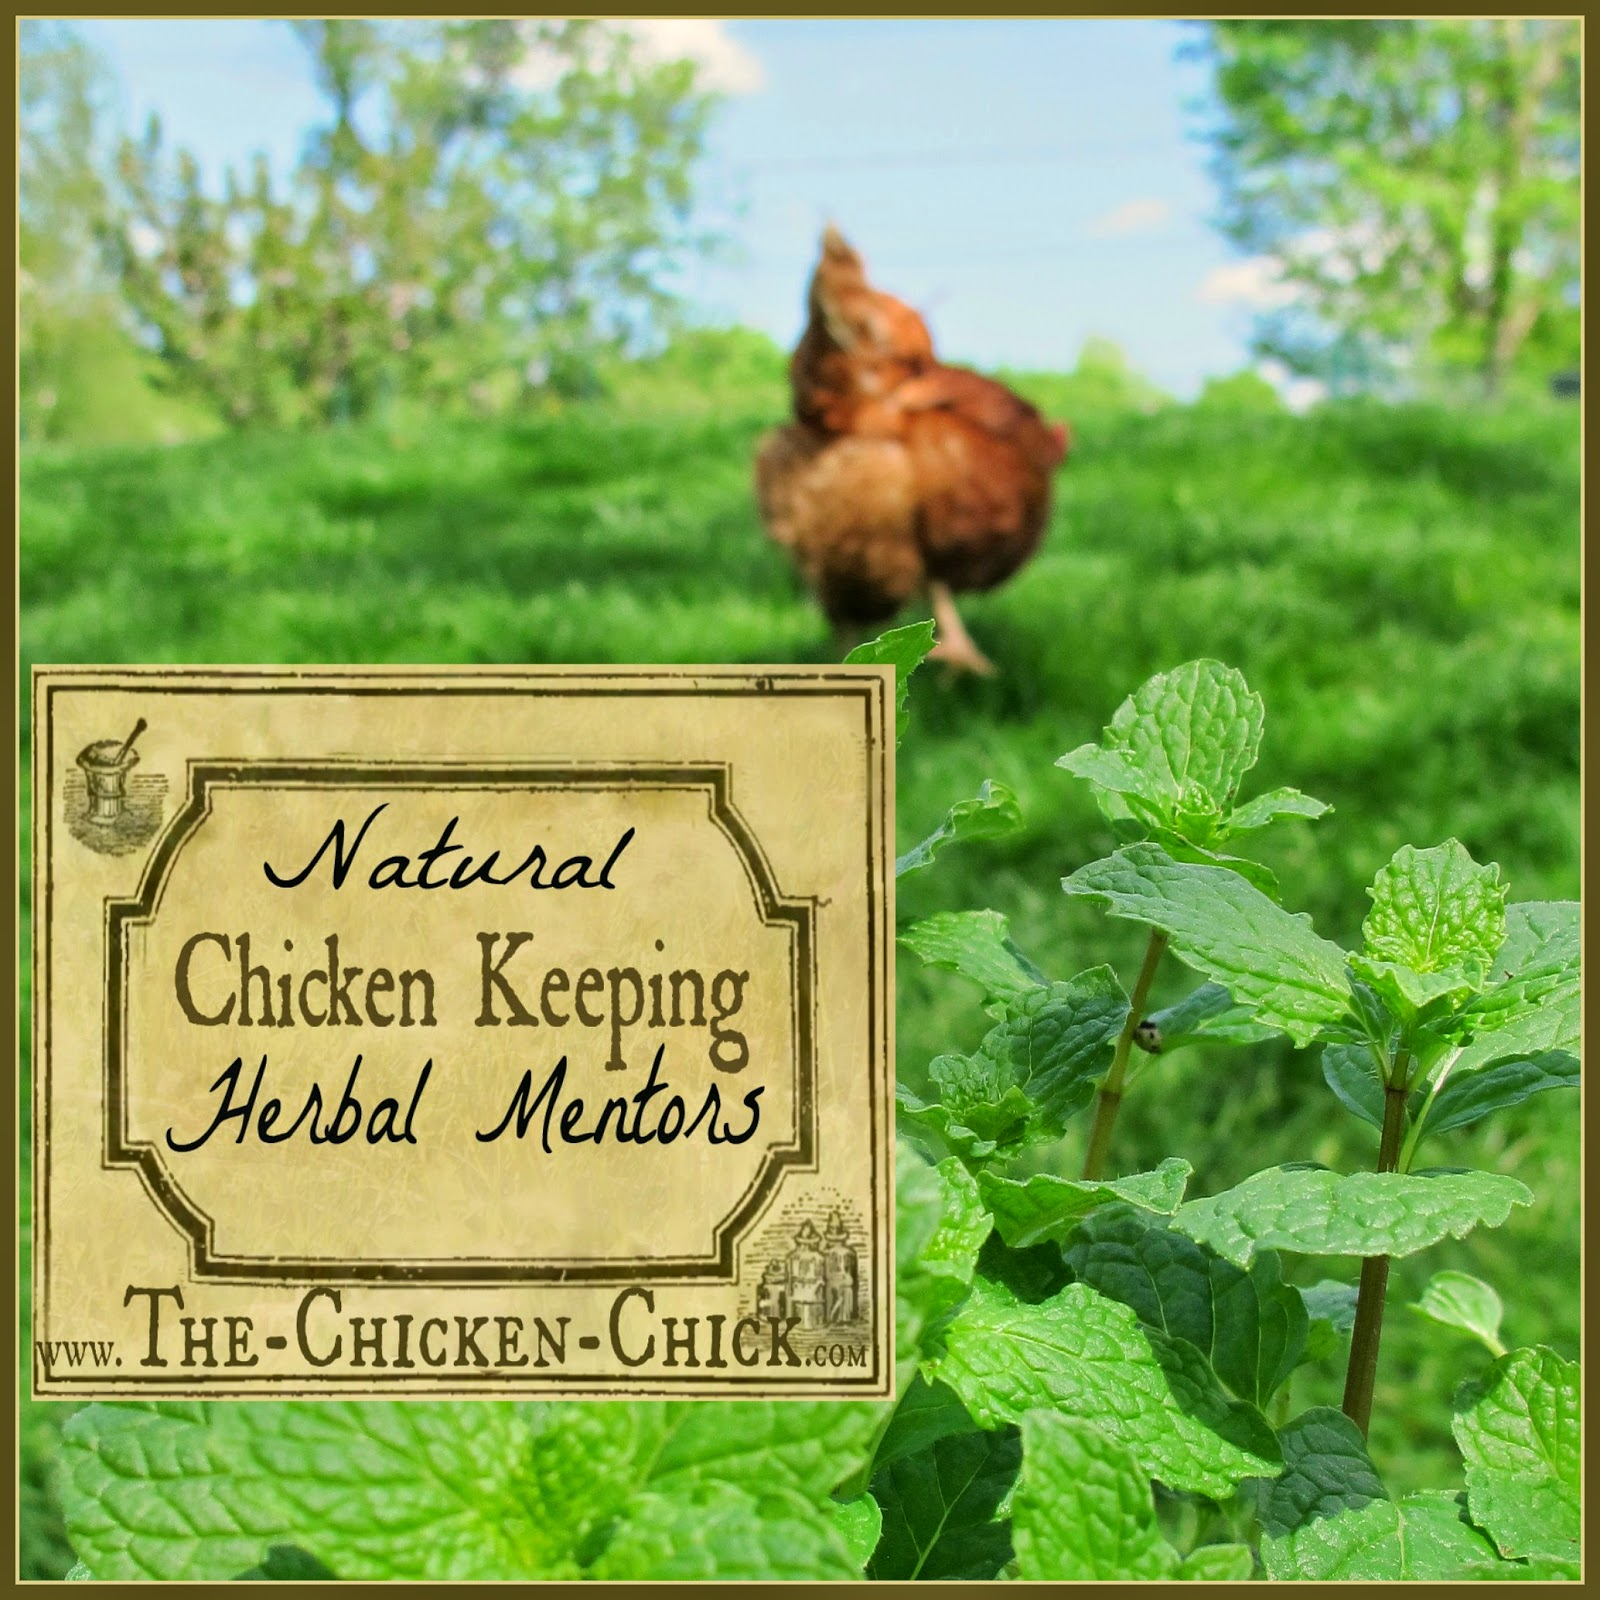 "Learn to identify qualified natural chicken keeping mentors in order to care for your chickens properly while saving time and money on herbal routines and ""remedies"" that will not help chickens and that could hurt them."